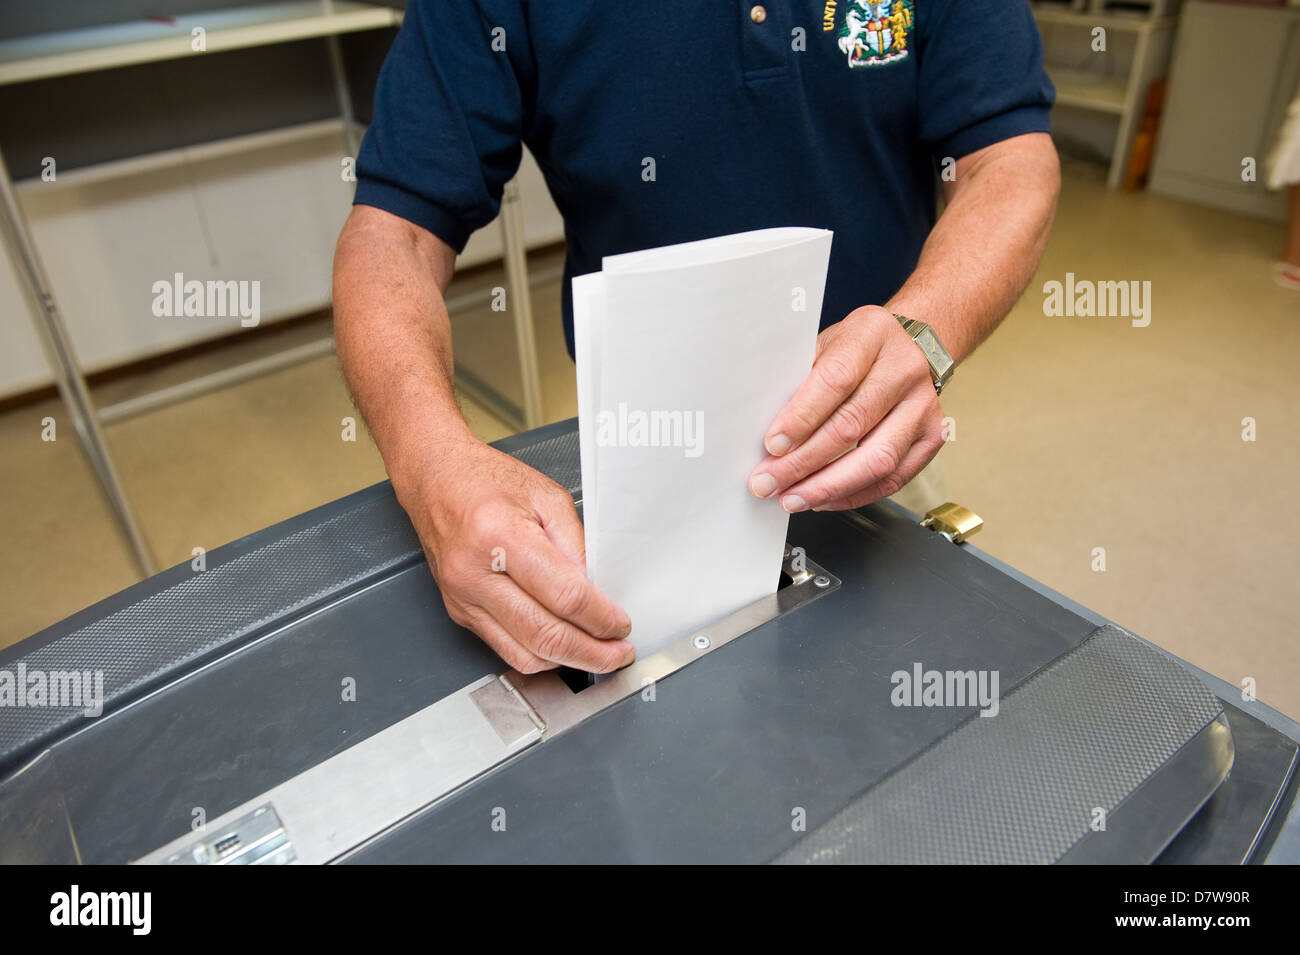 A man is putting his ballot in a ballot box - Stock Image